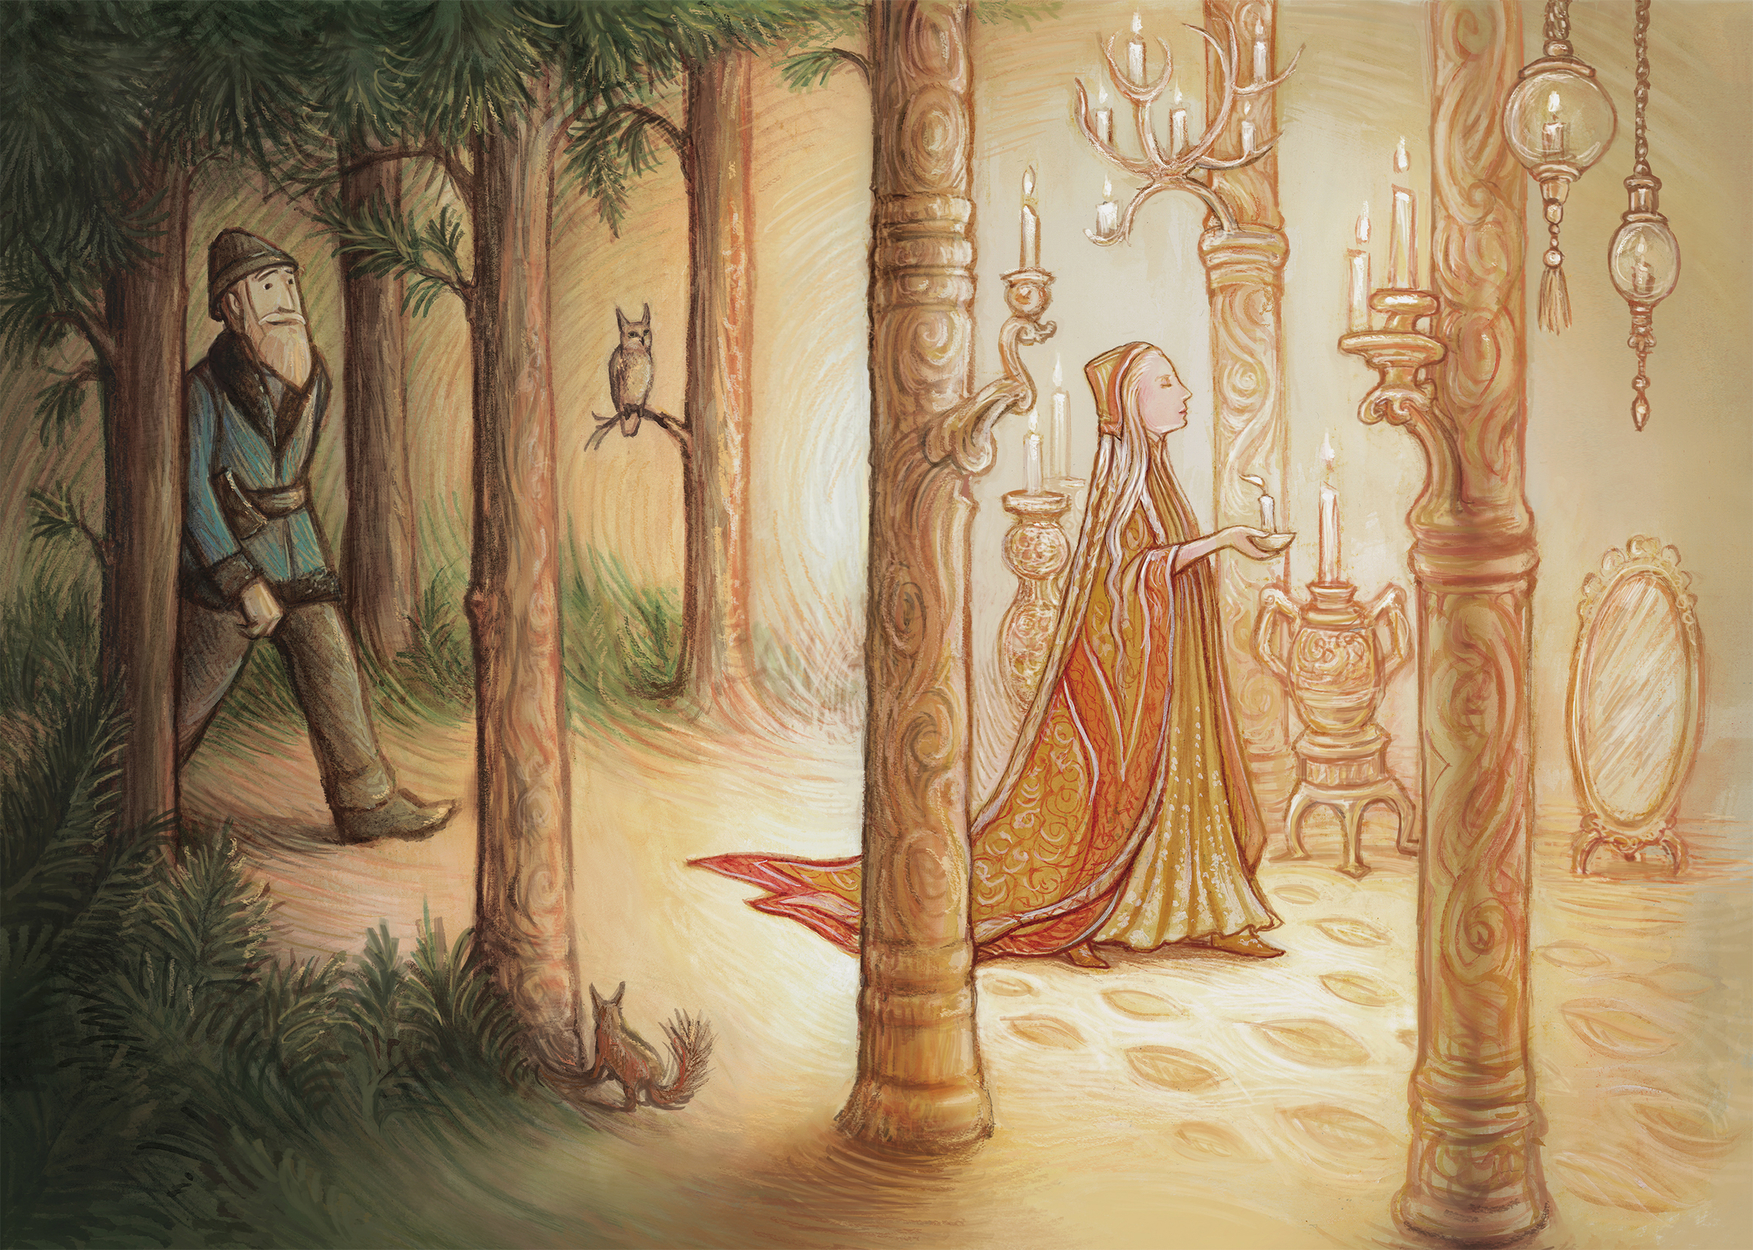 The Woodcutter and the Huldra Artwork by I. S. Kallick